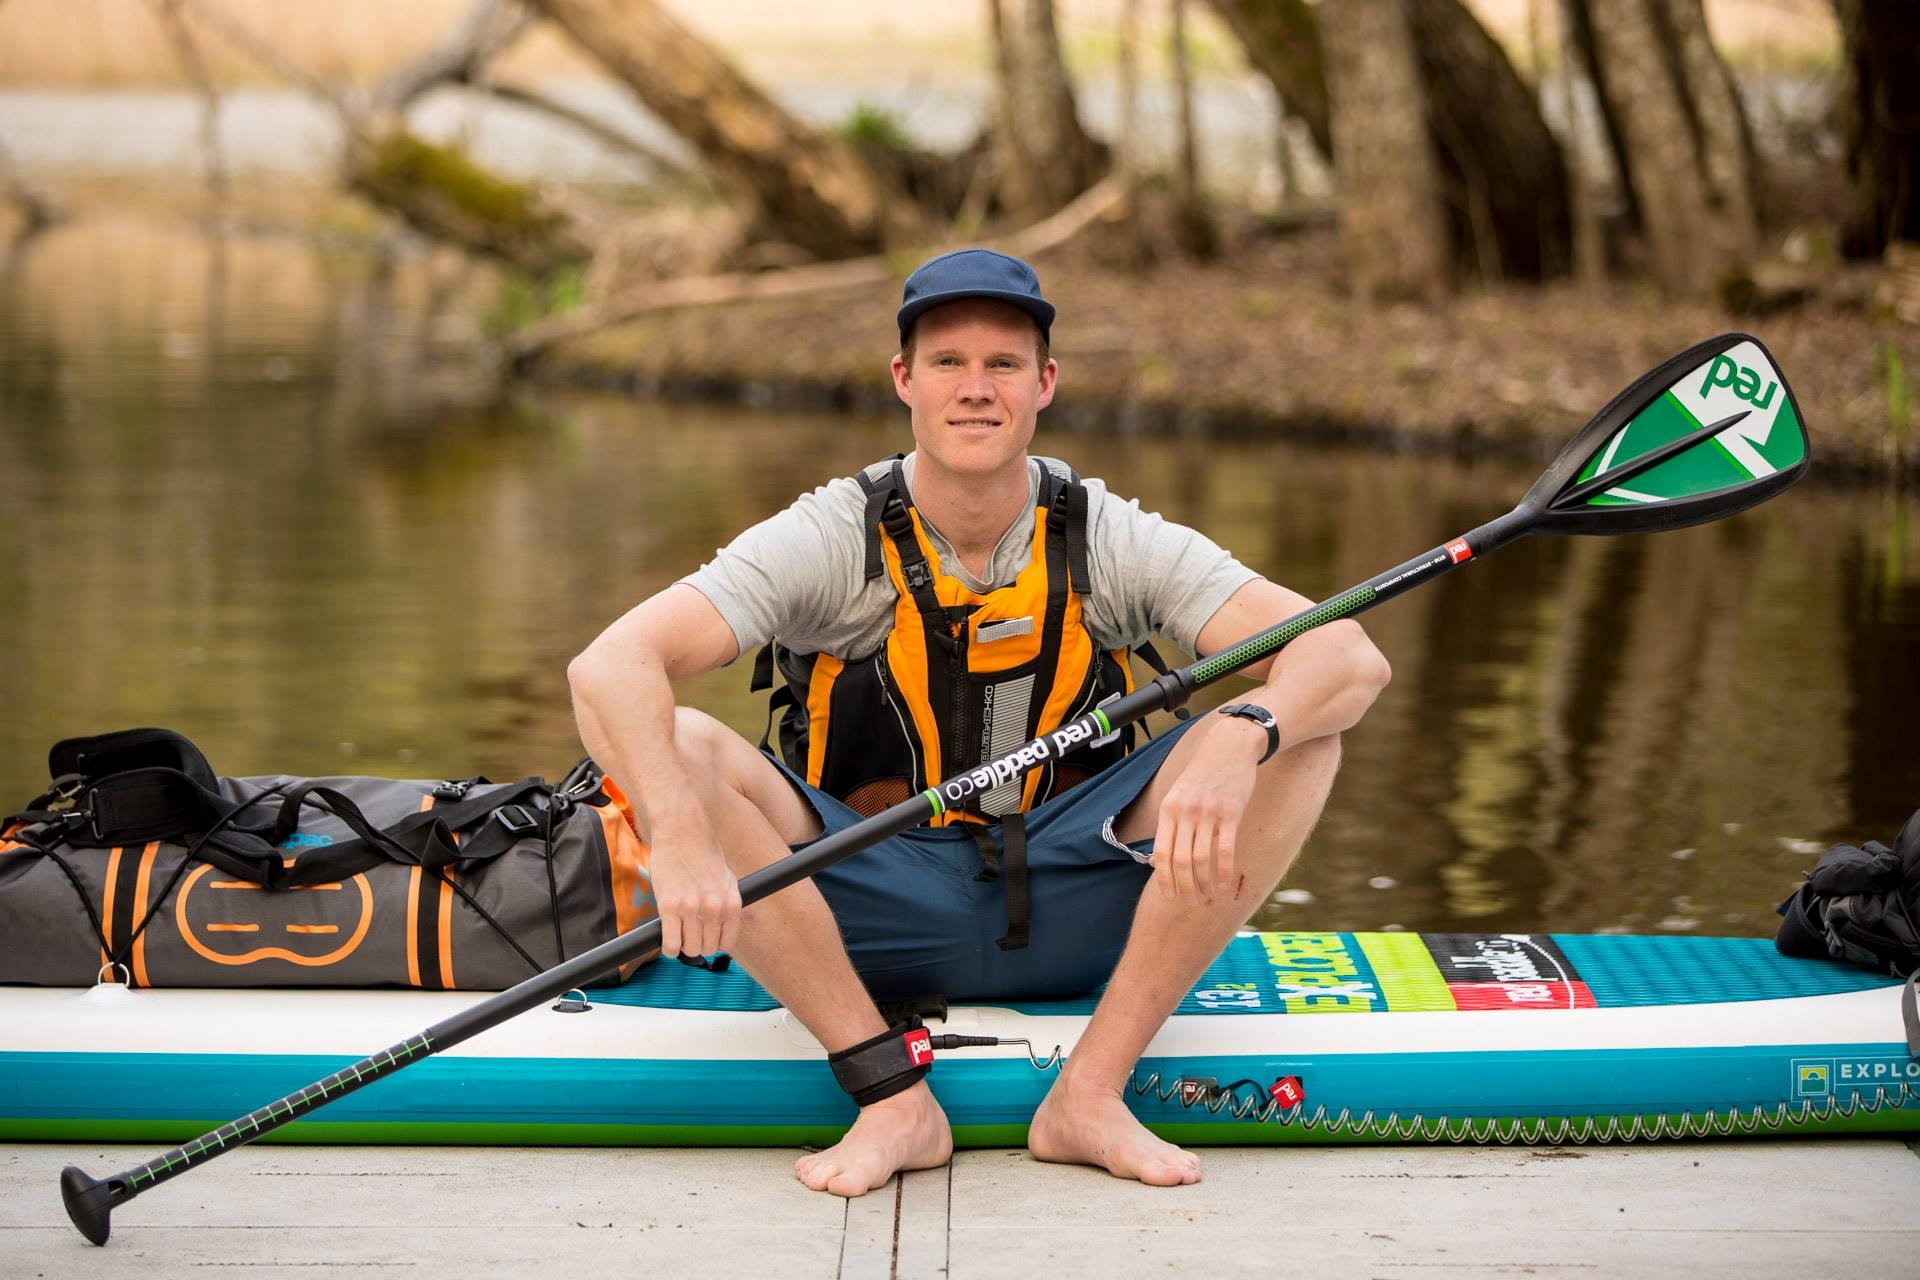 Marcus Aspsjö is going to spend two months paddling along the Yukon River